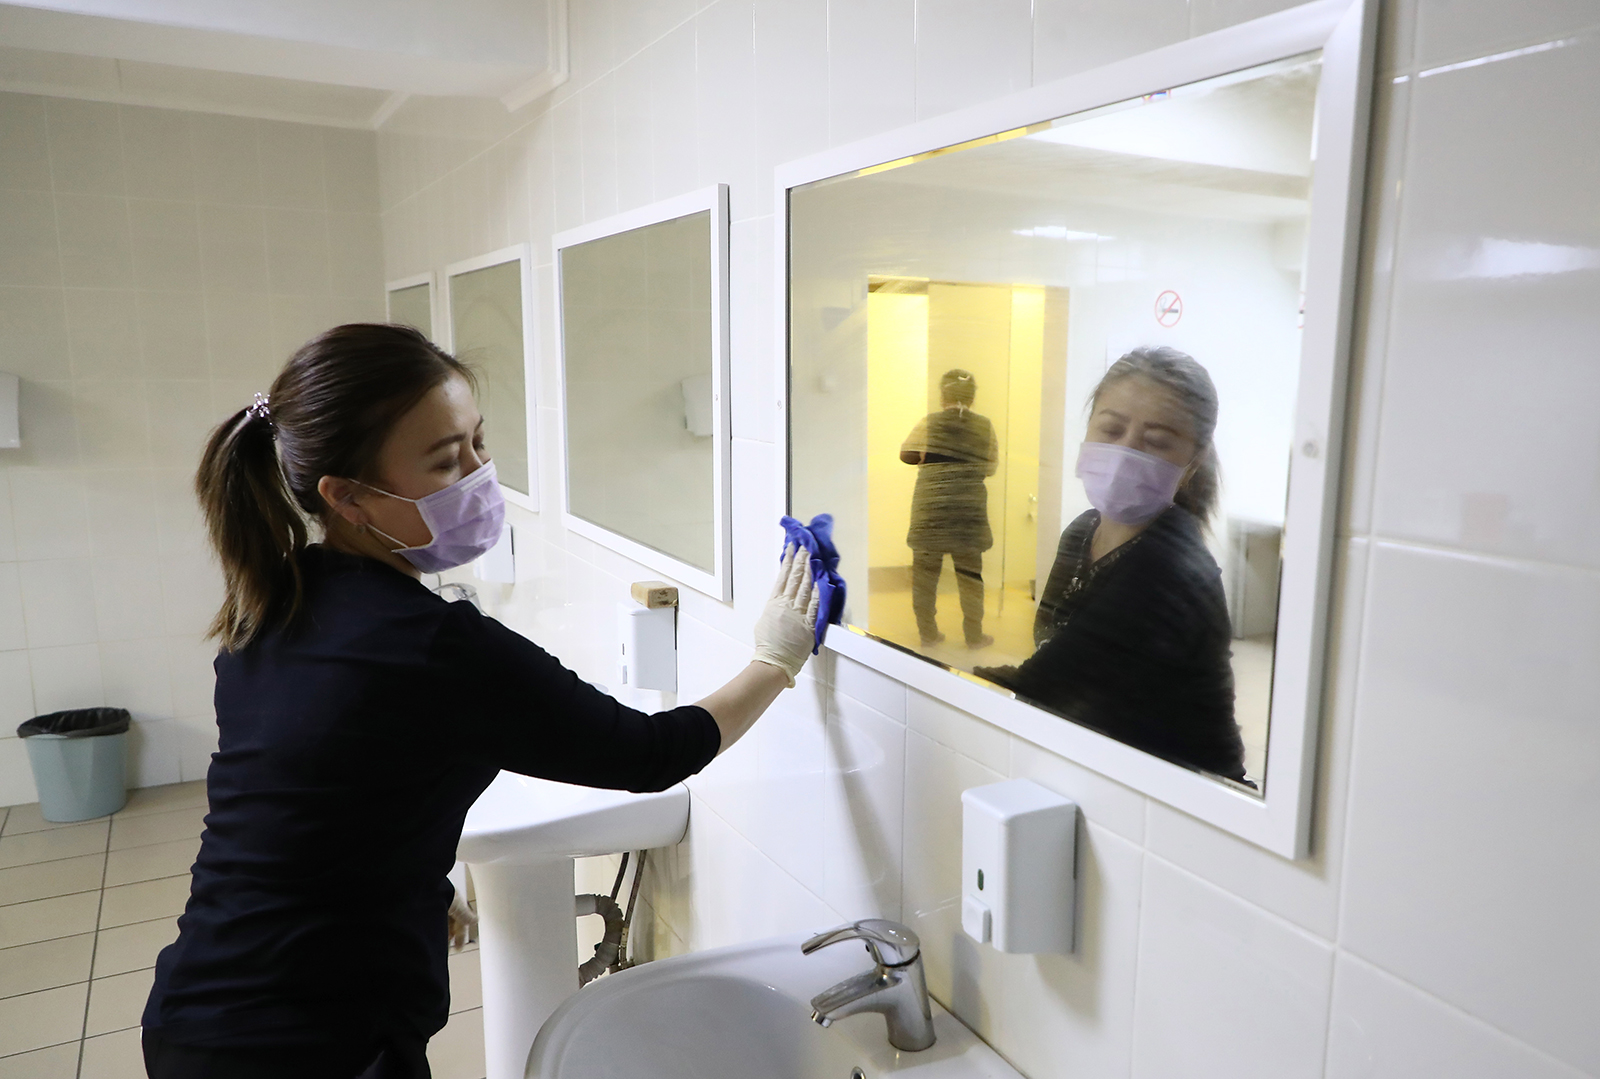 An employee disinfects mirrors in a bathroom at the Taganka Theatre in Moscow on March 17.